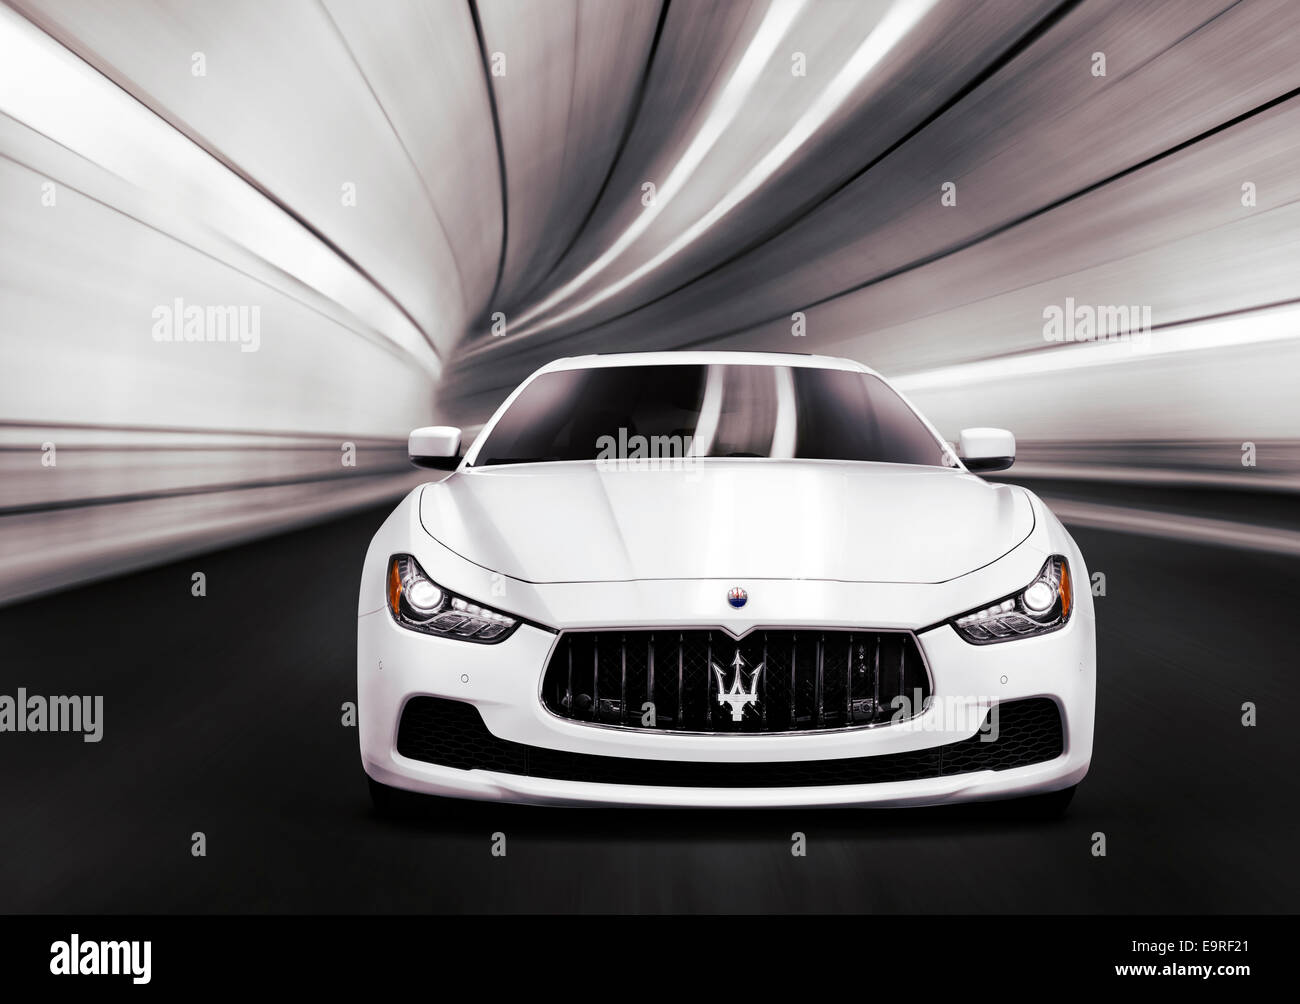 White 2014 Maserati Ghibli S Q4 luxury car speeding in a tunnel. Front view. - Stock Image